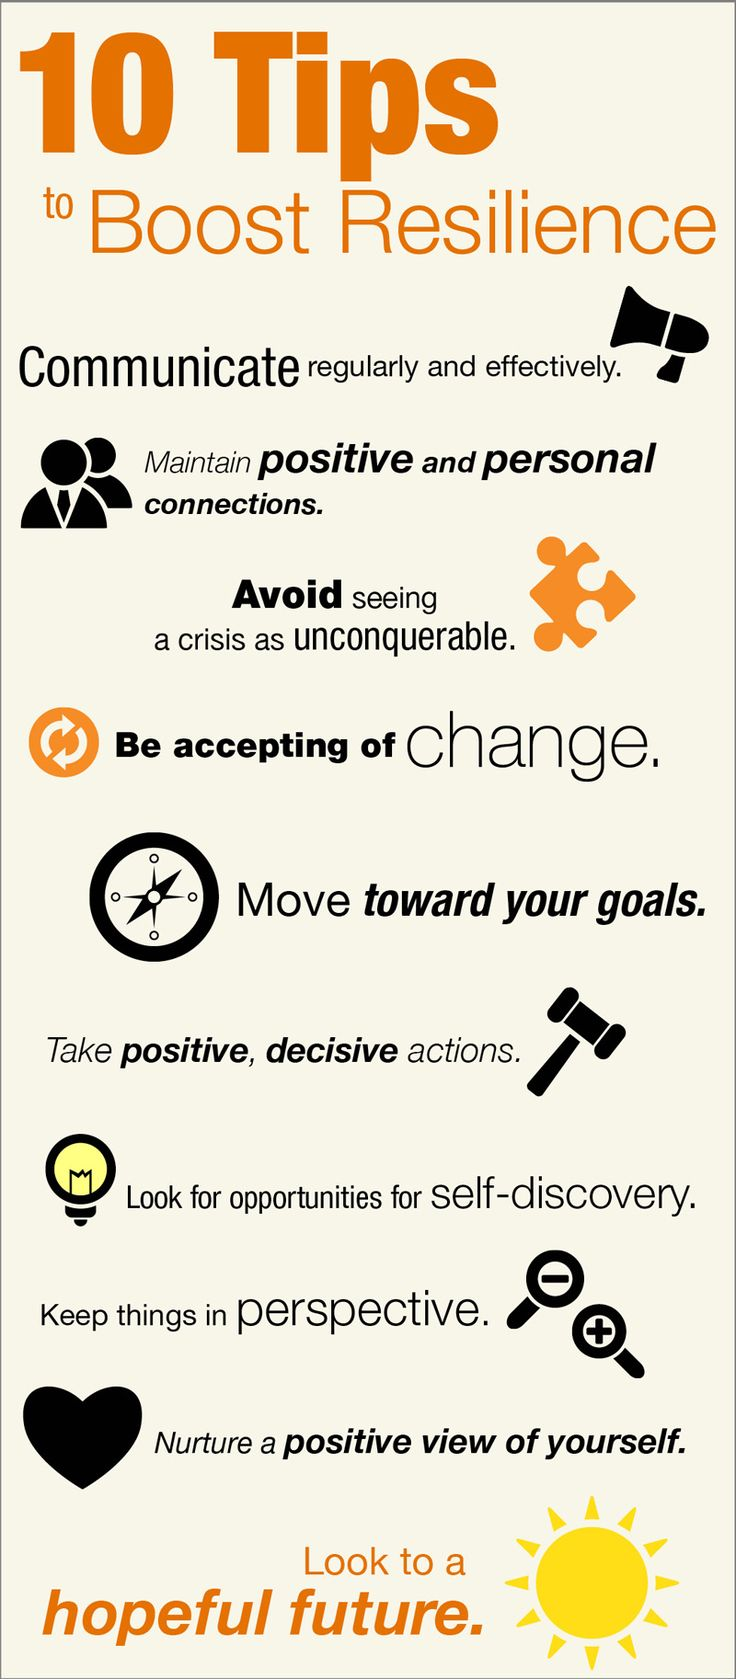 Building Resilience... tips to boost resilience for each of us. #resilience #tips